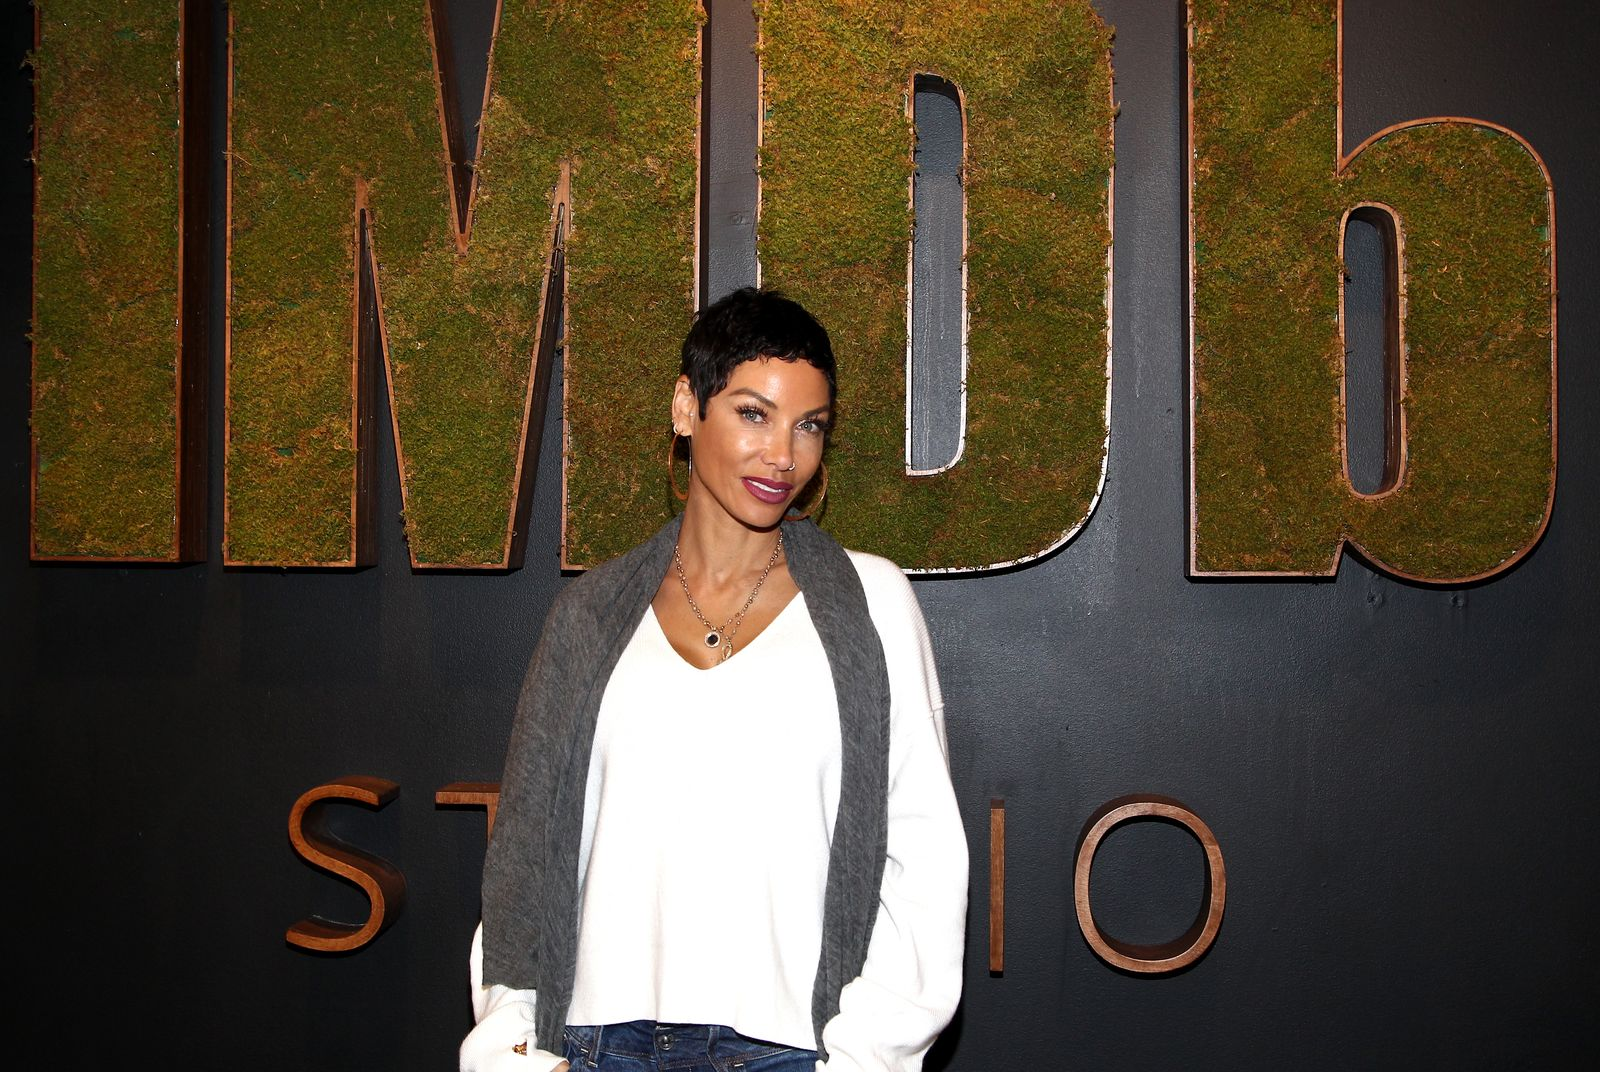 Nicole Mitchell Murphy during the private 50th birthday party for IMDb's Col Needham on January 23, 2017 in Park City, Utah. | Source: Getty Images